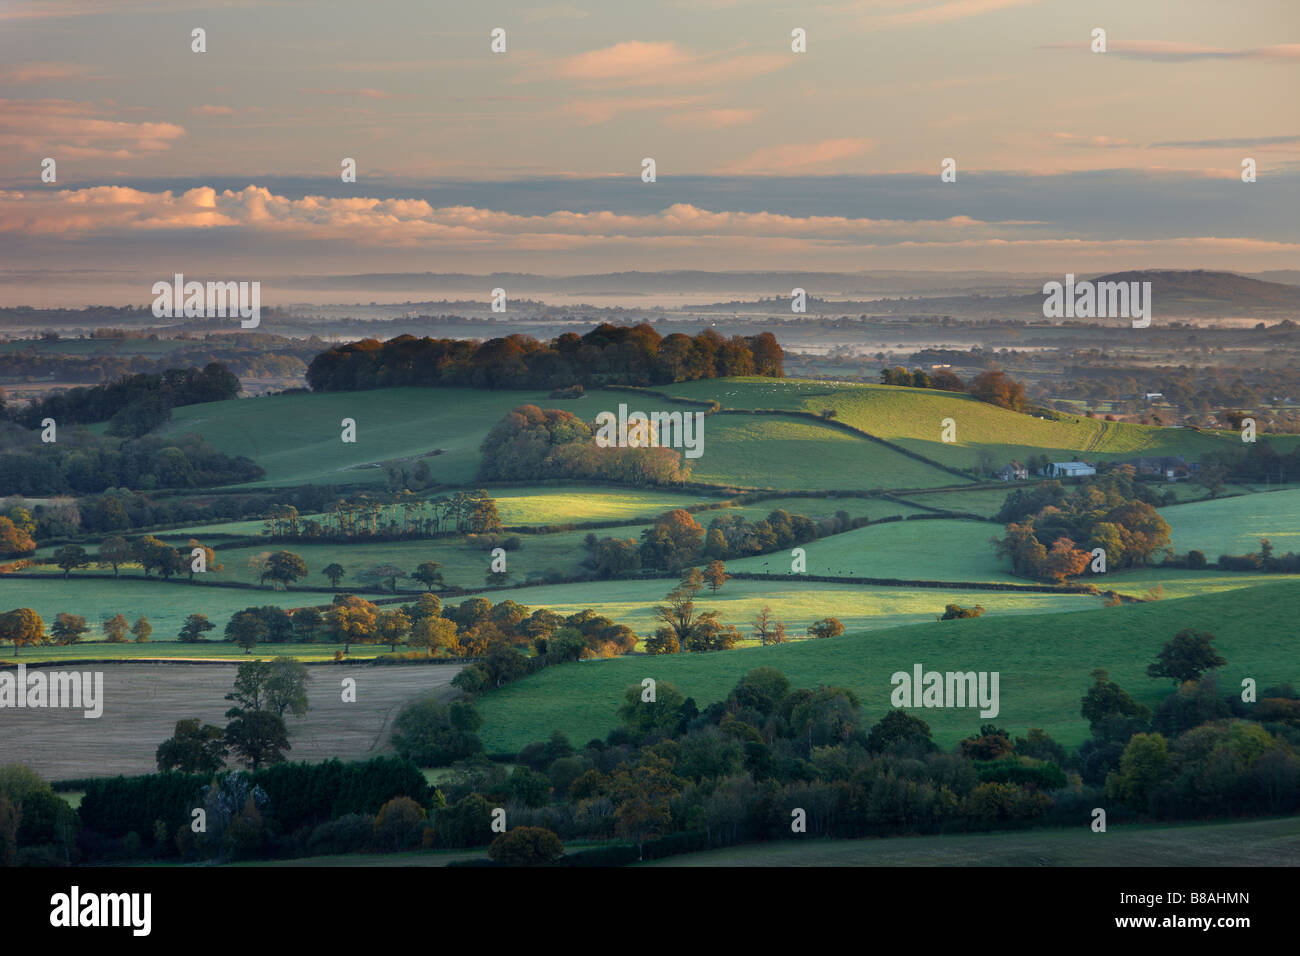 an autumn dawn in the Blackmore Vale, Dorset, England, UK - Stock Image